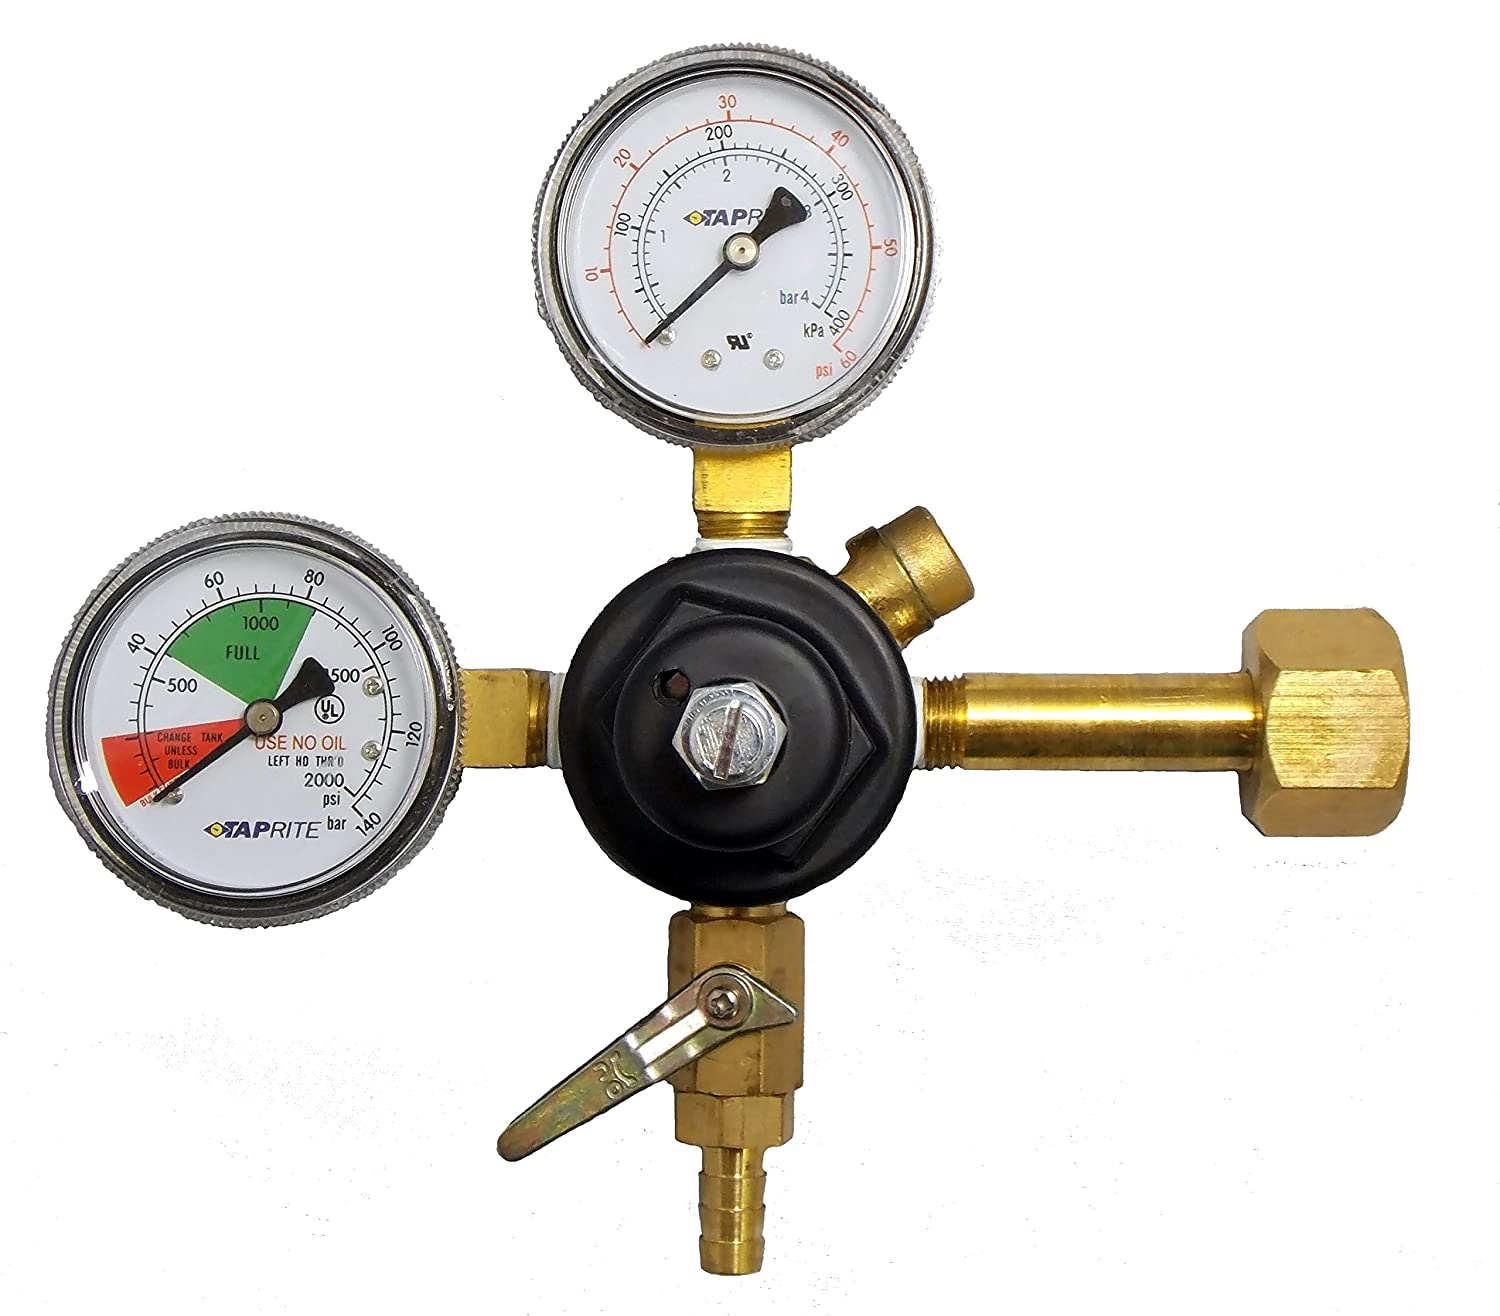 TAPRITE E-T742 CO2 Primary Beer Dual High Pressure Gauge New - CGA 320 Inlet 5/16